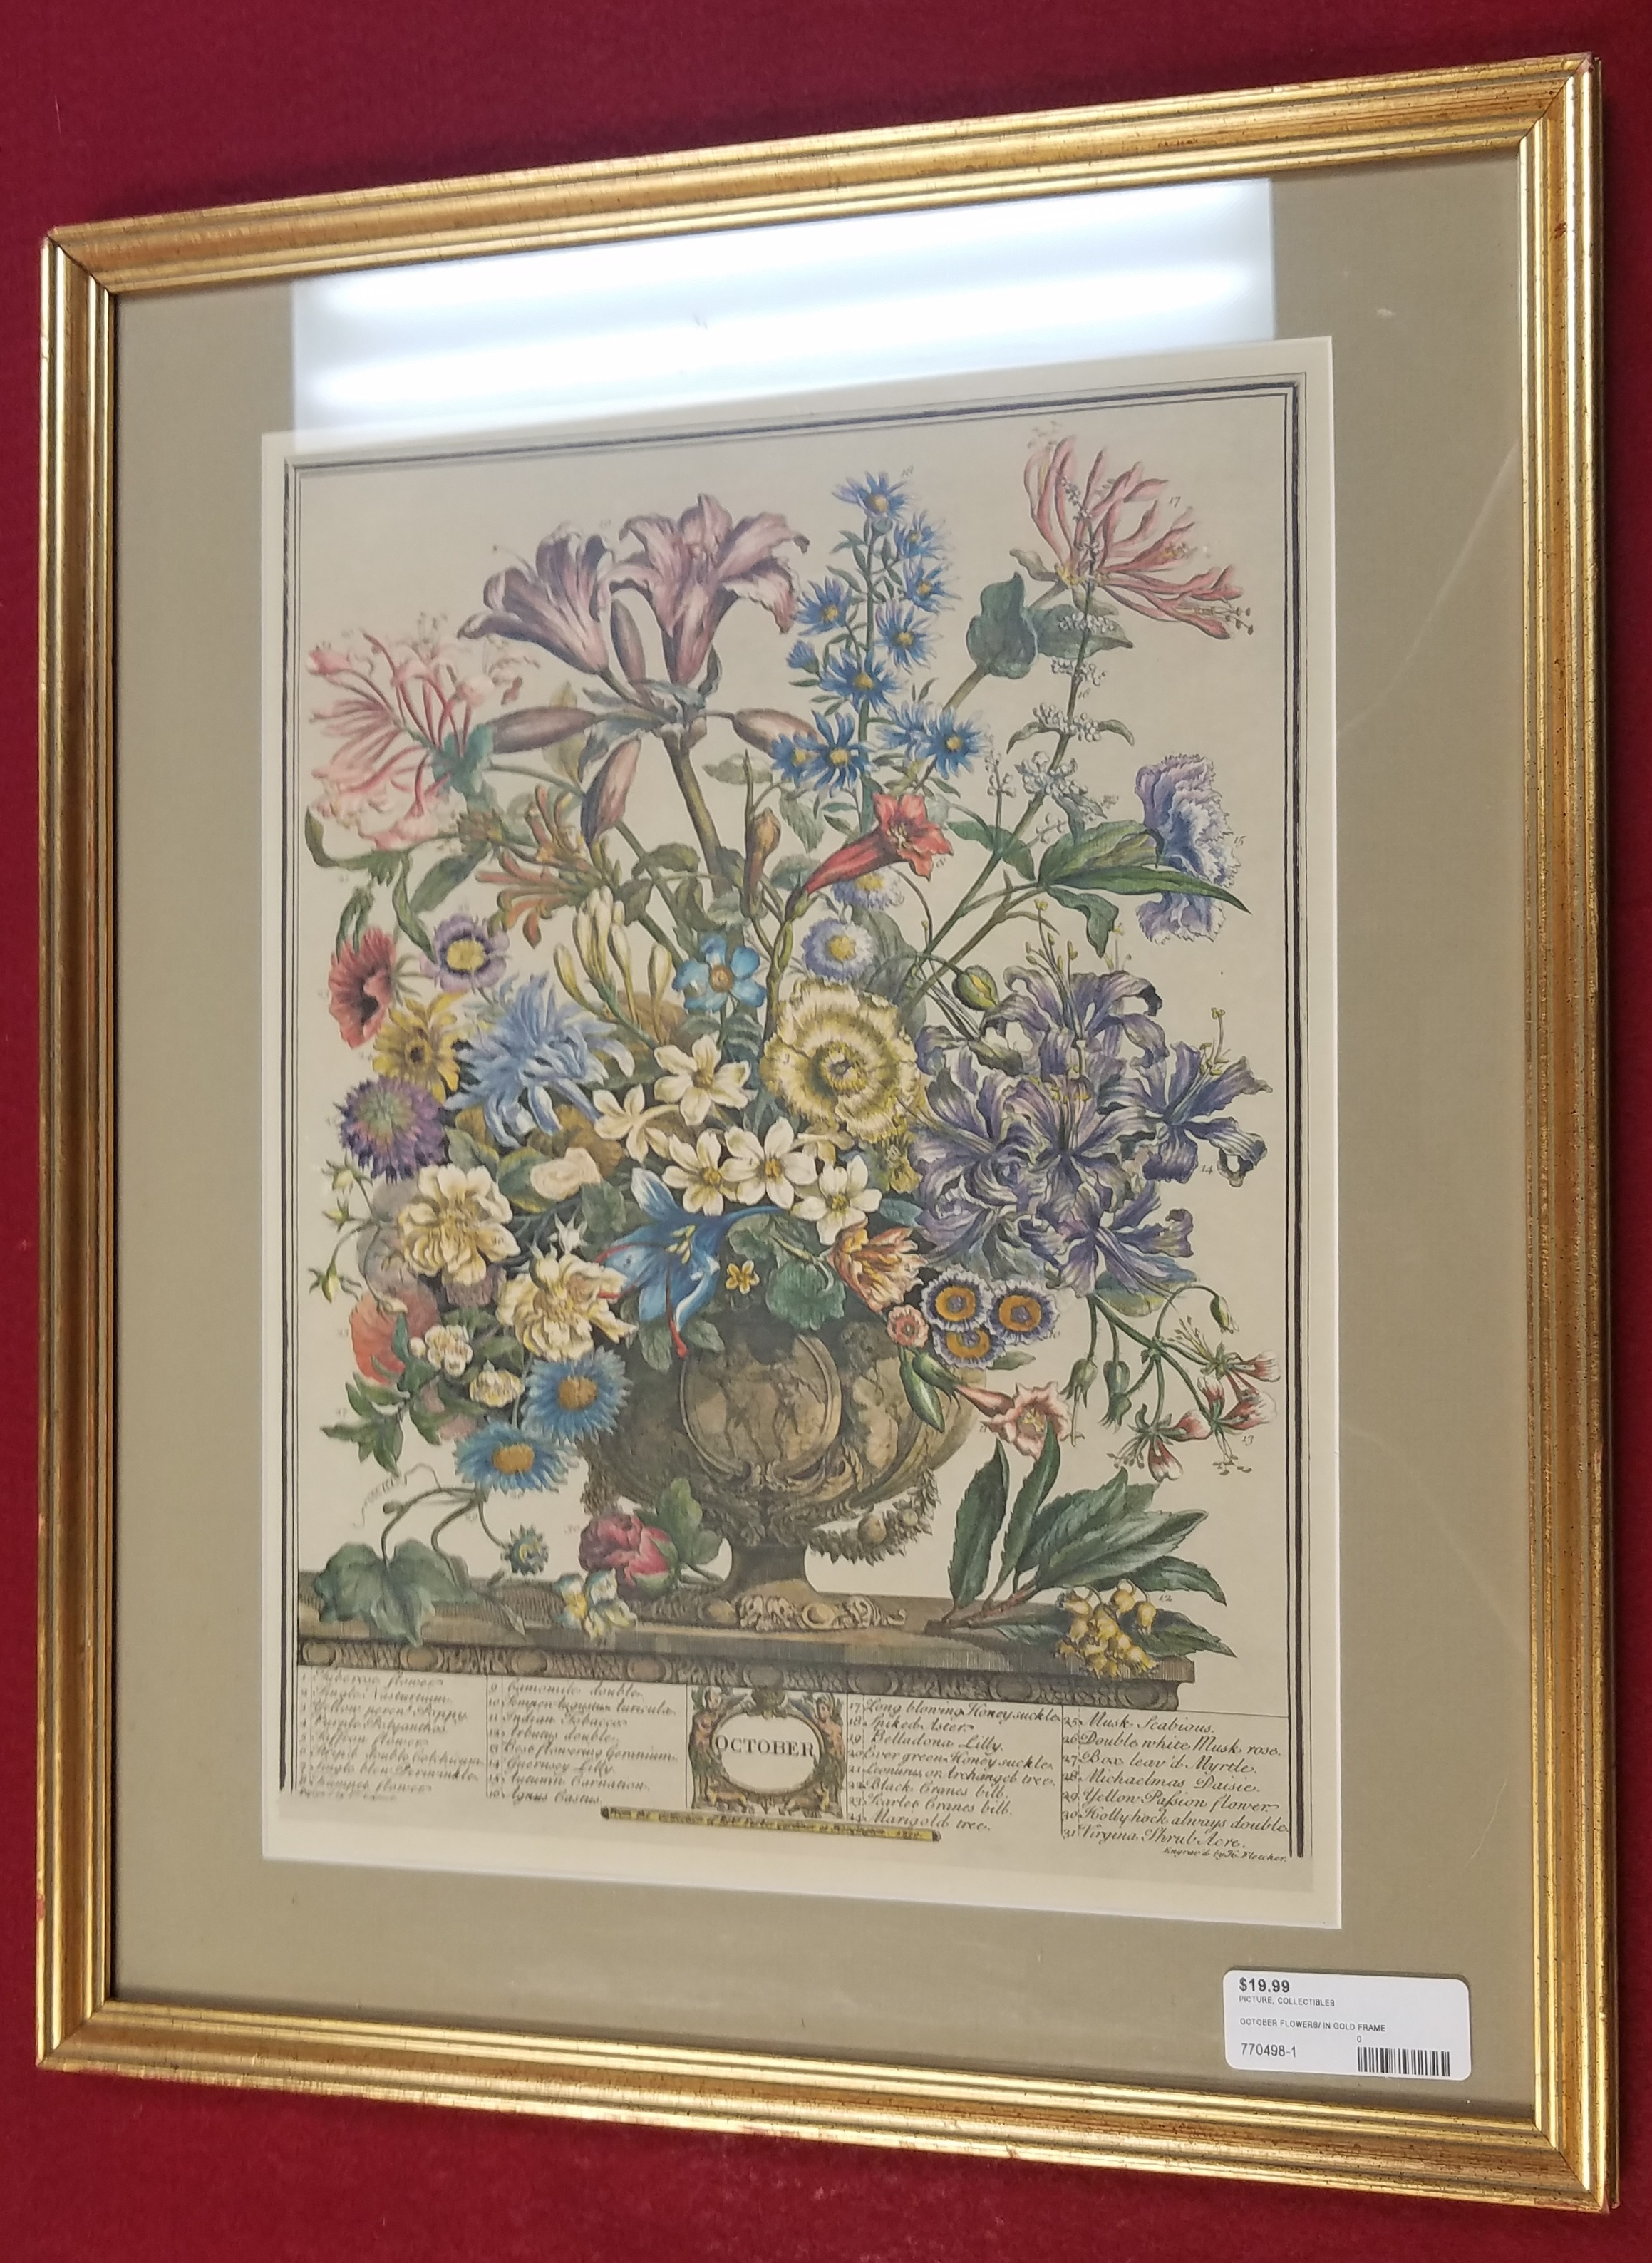 ART/COLLECTIBLES: OCTOBER FLOWERS IN GOLD FRAME